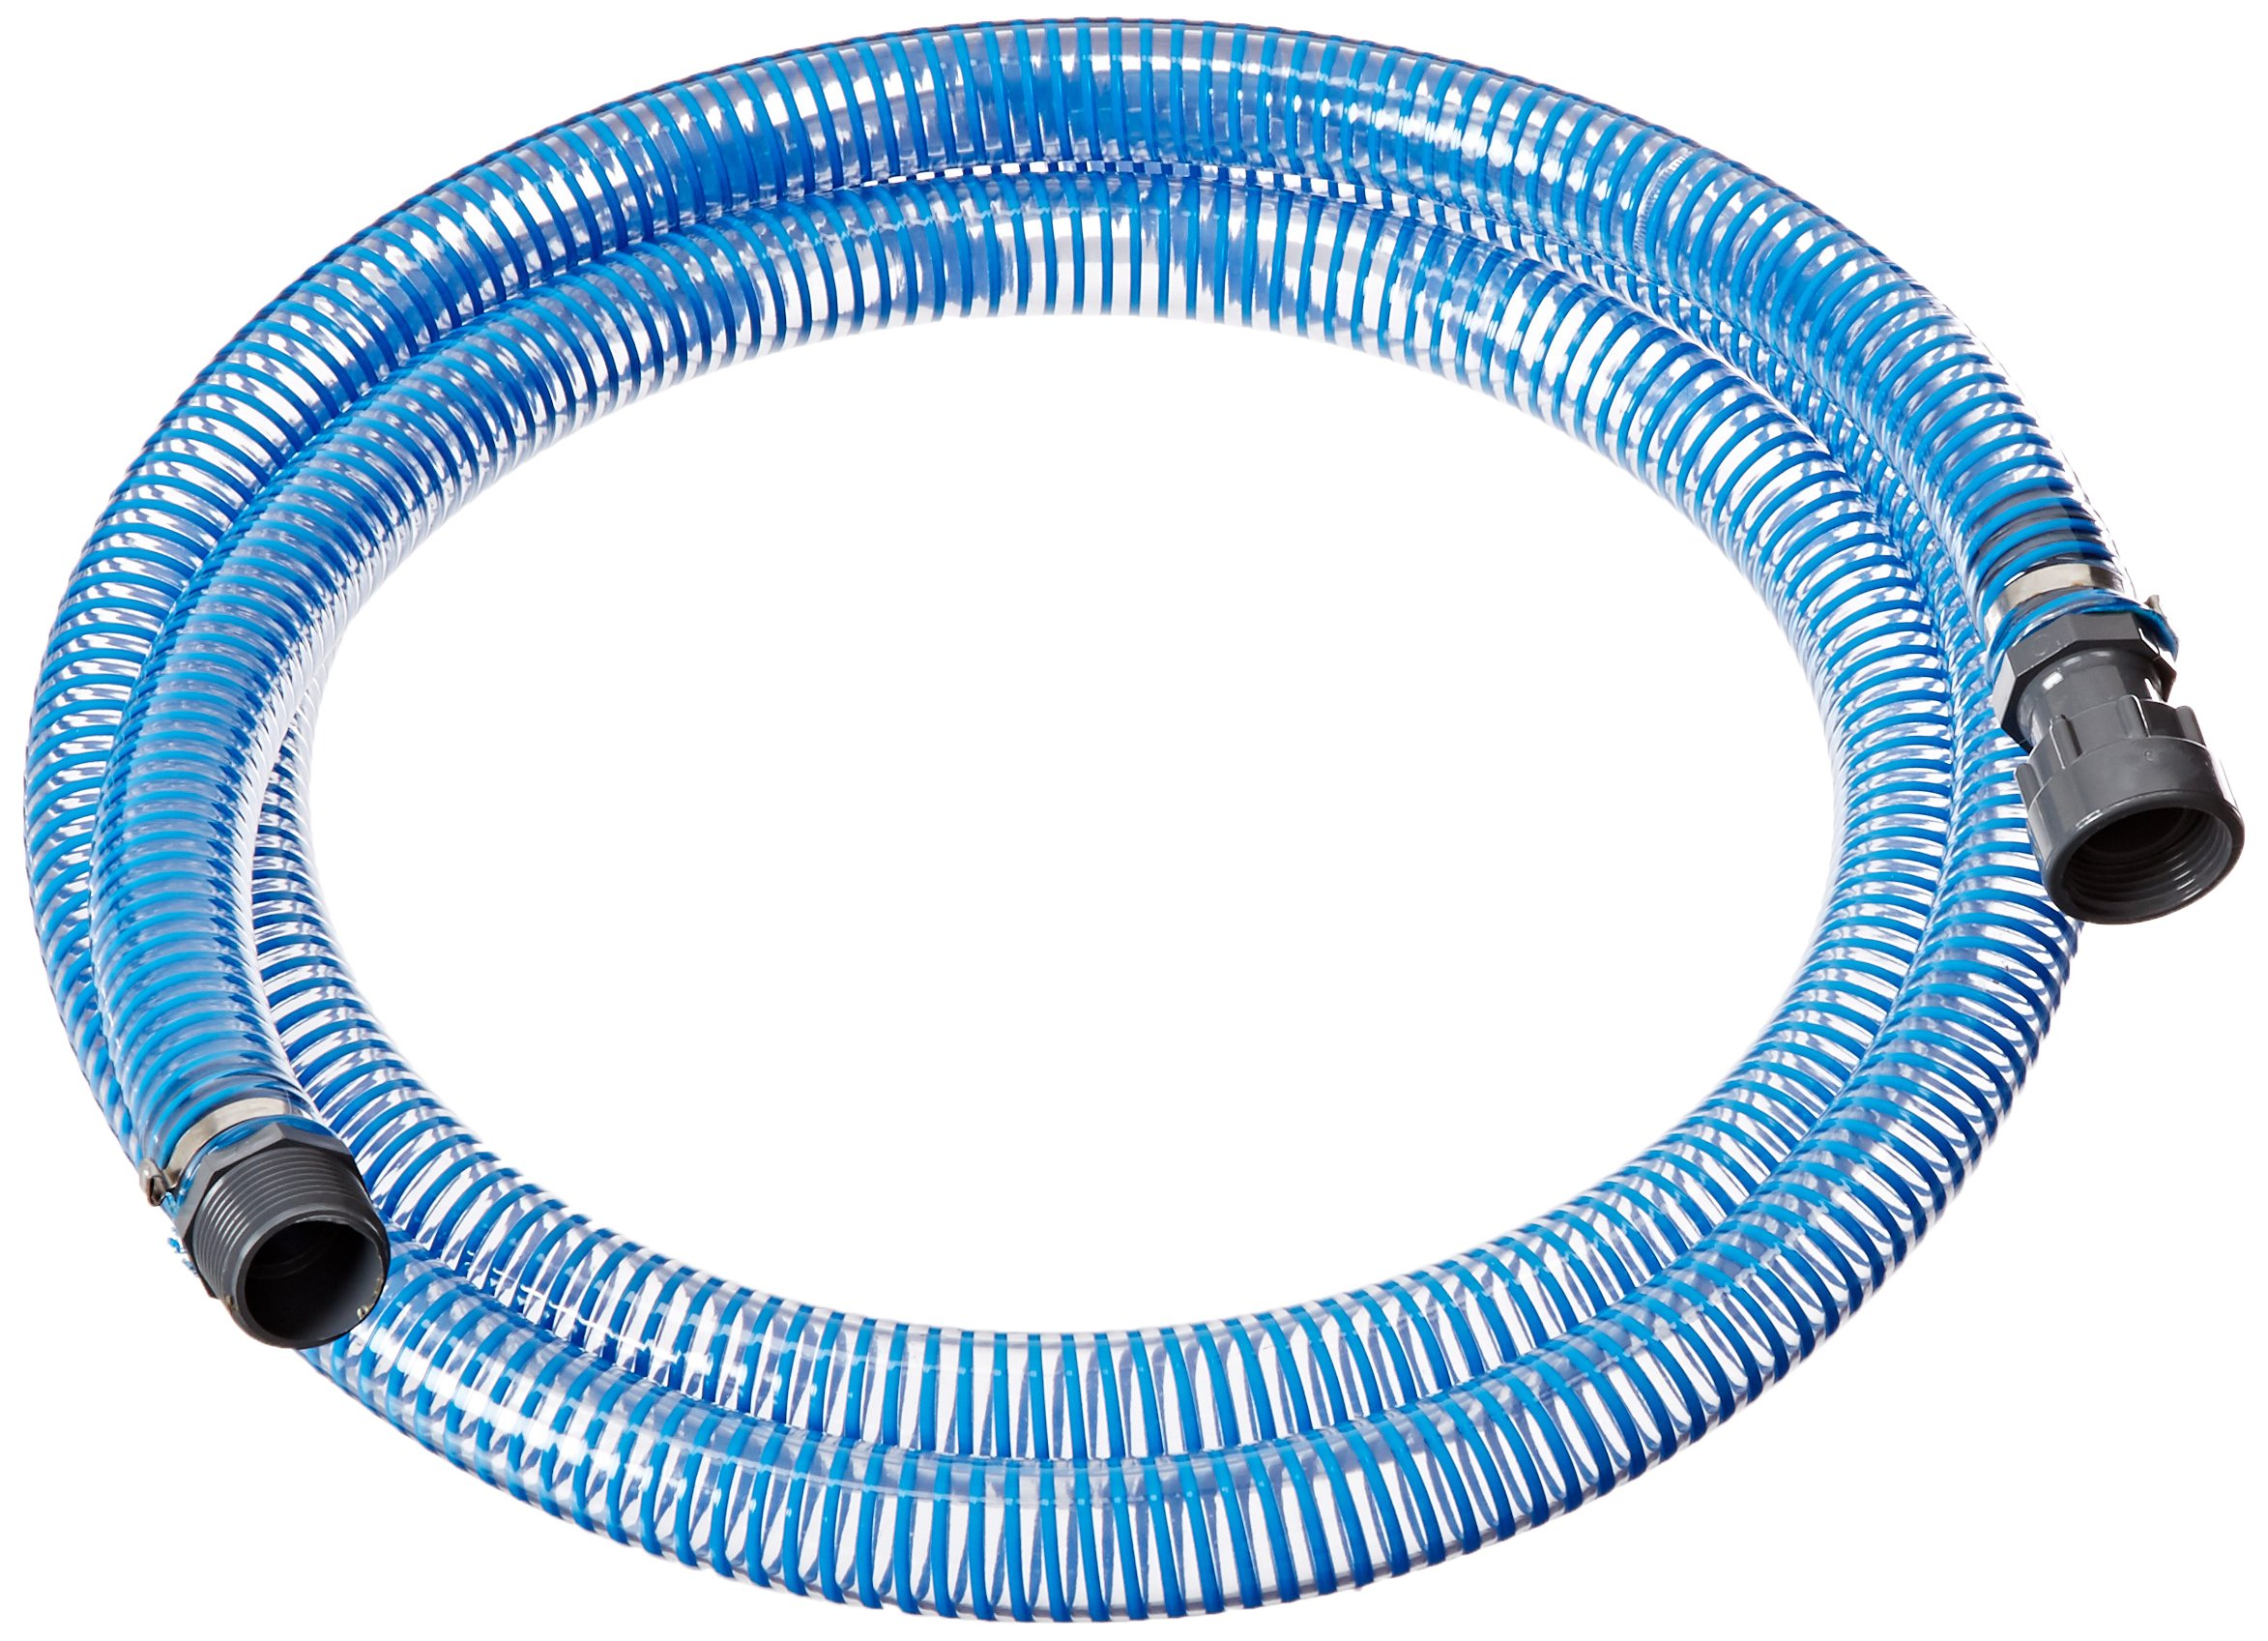 Clean Dump (CDH-10) 10' Length Extension Hose by Clean Dump